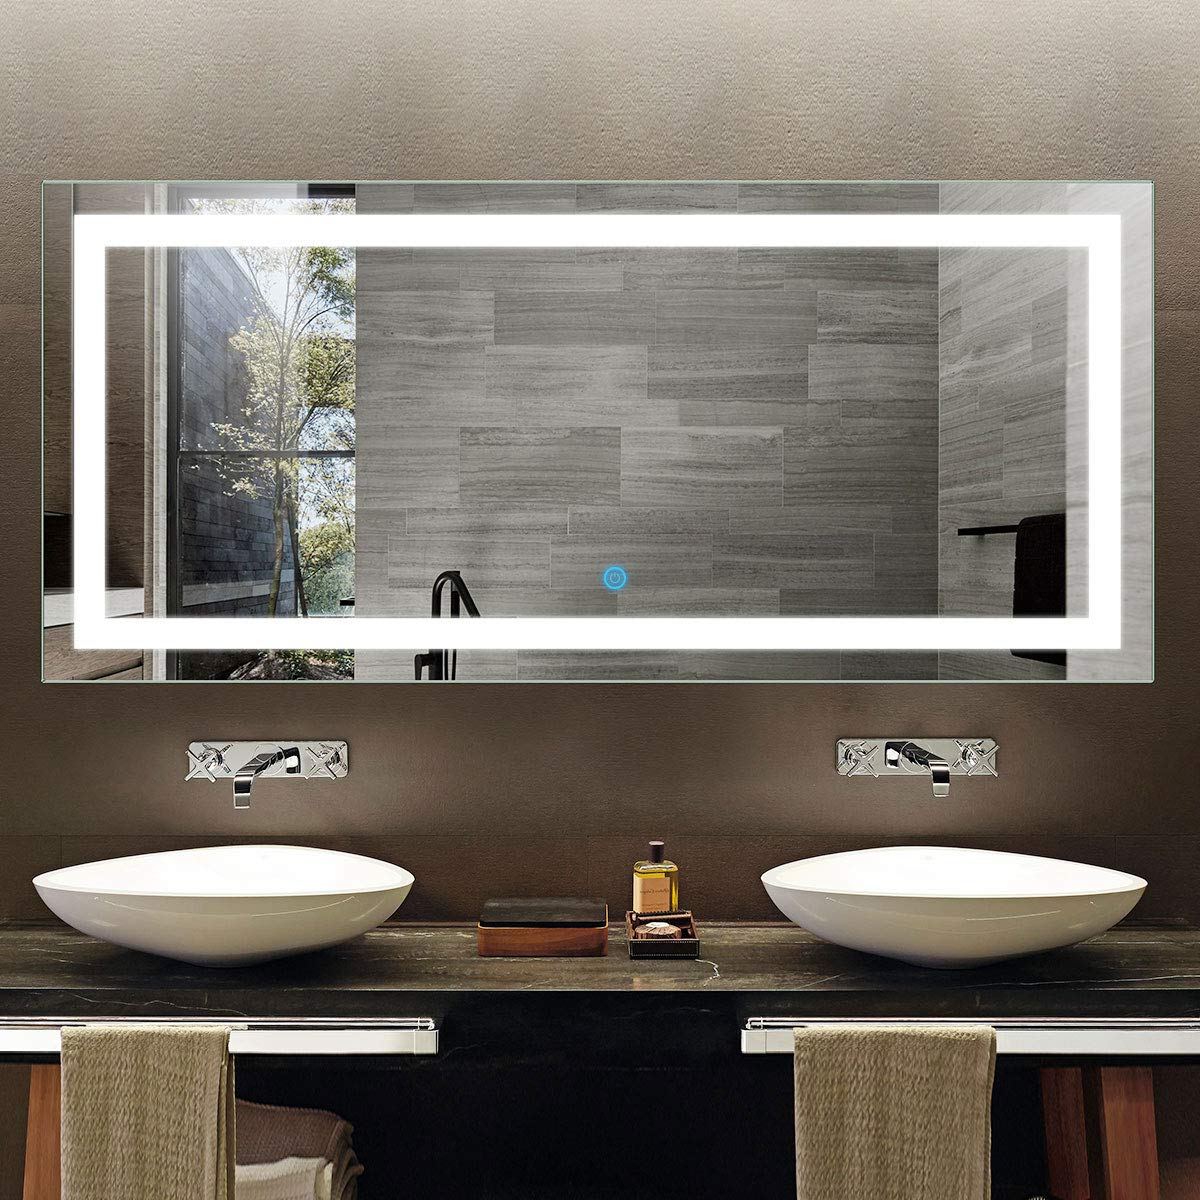 Large Modern Lighted Wall Mounted Bathroom Vanity Mirror, Led Frameless Backlit Illuminated Wall Mirror, Rectangle Horizontally White Mirrors For Pertaining To Most Recent Bathroom Vanity Wall Mirrors (View 20 of 20)